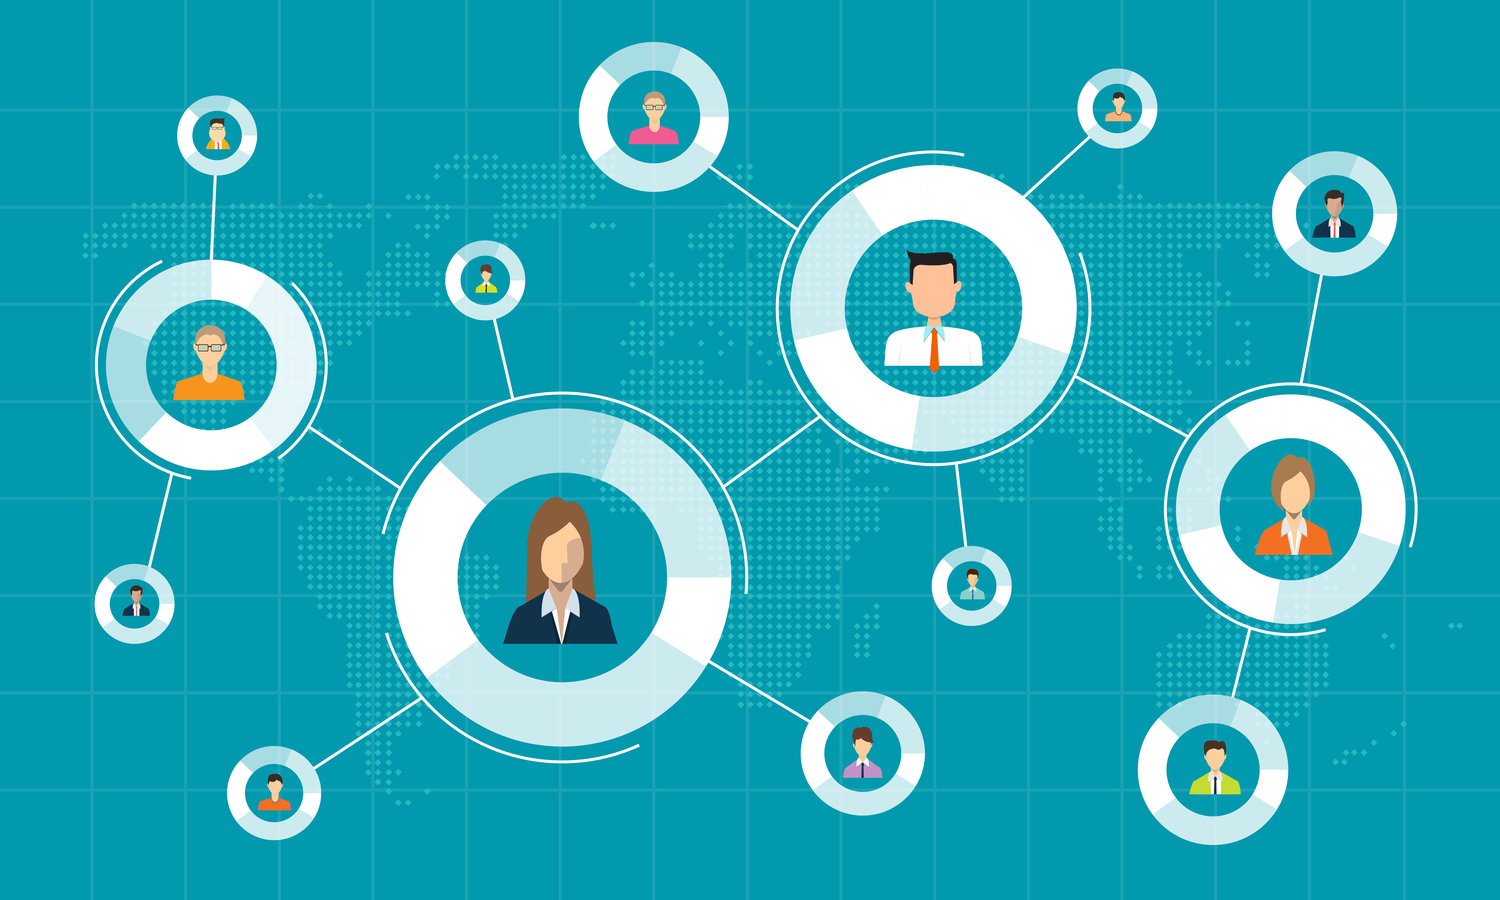 5 Ways to Build a Referral Network for Your Medical Practice